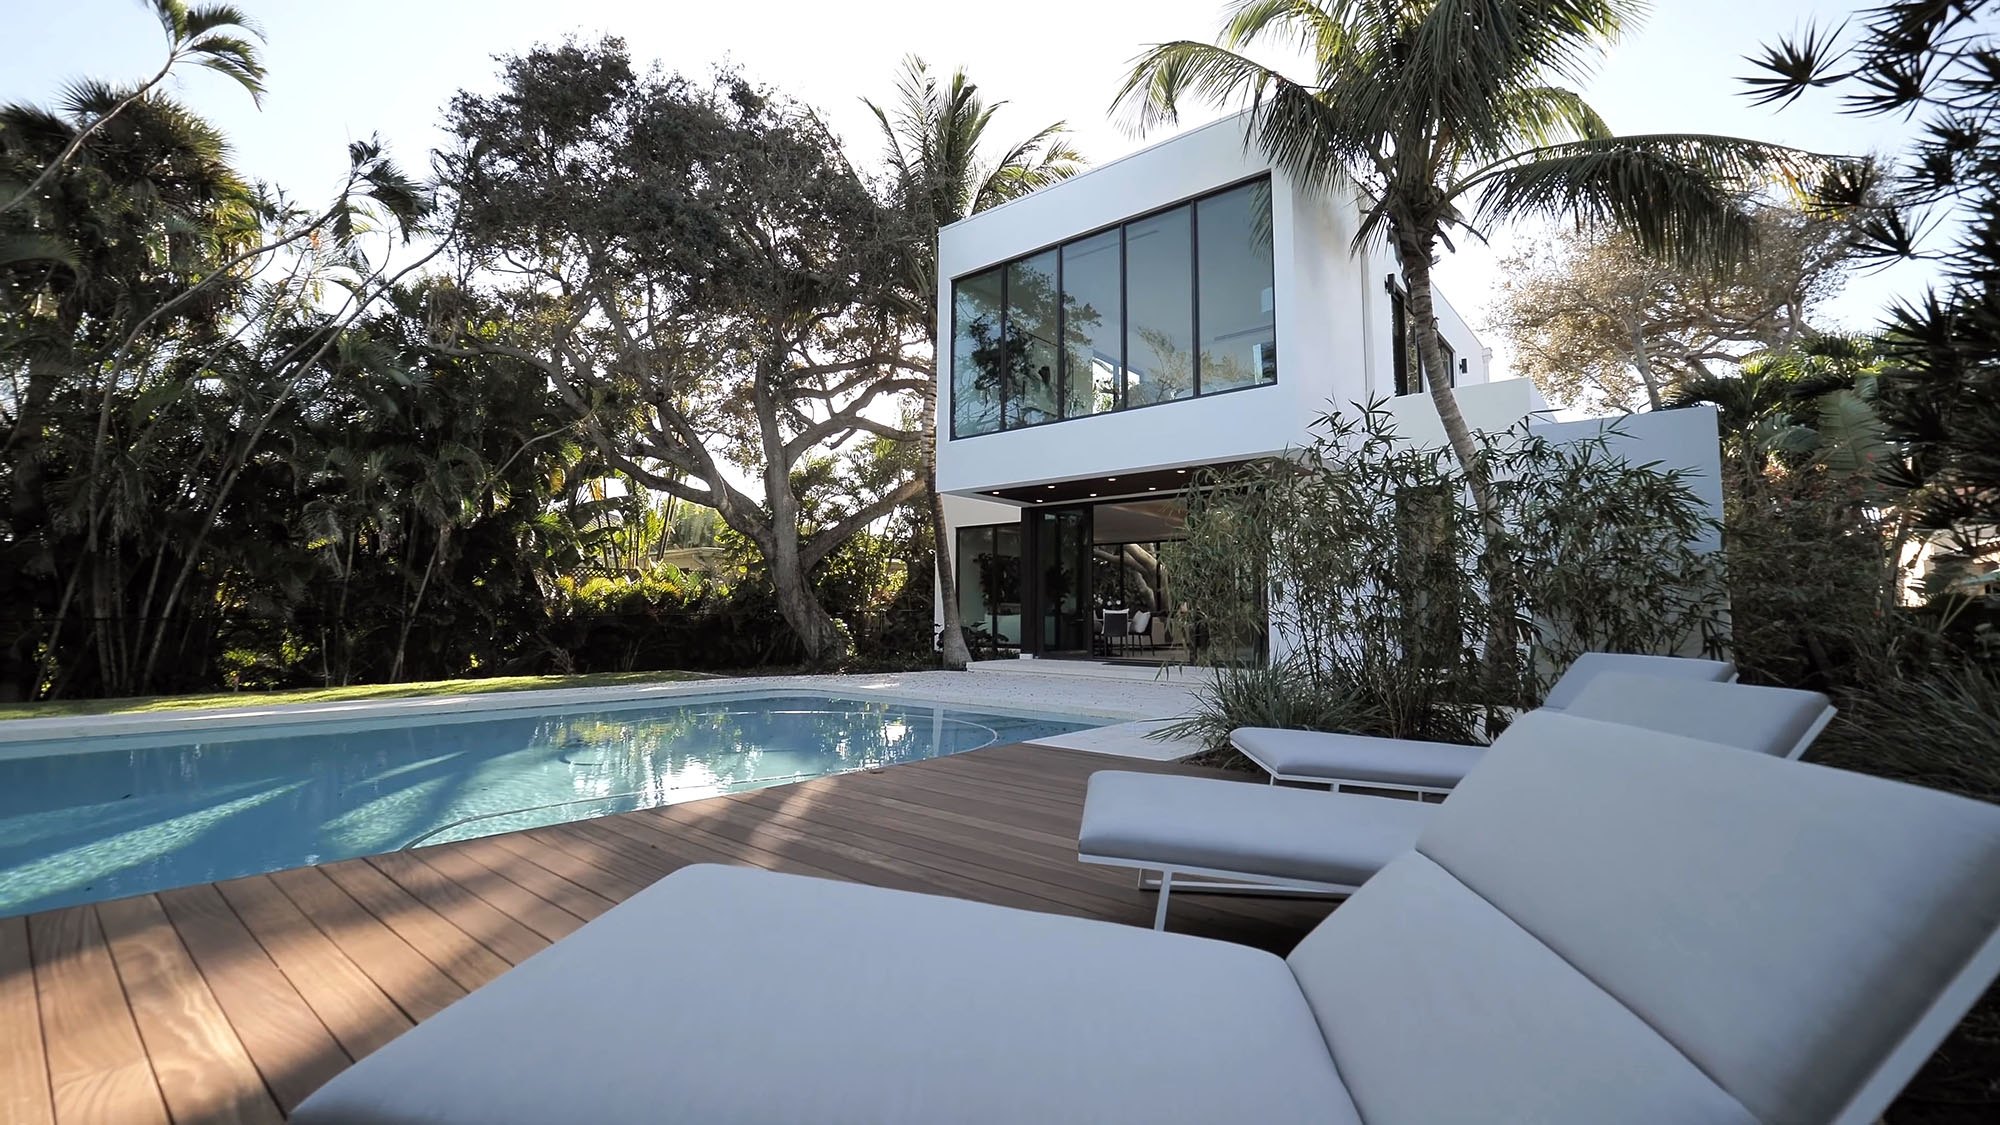 White stucco flat roof home with huge windows overlooking the in ground pool and Ipe deck.